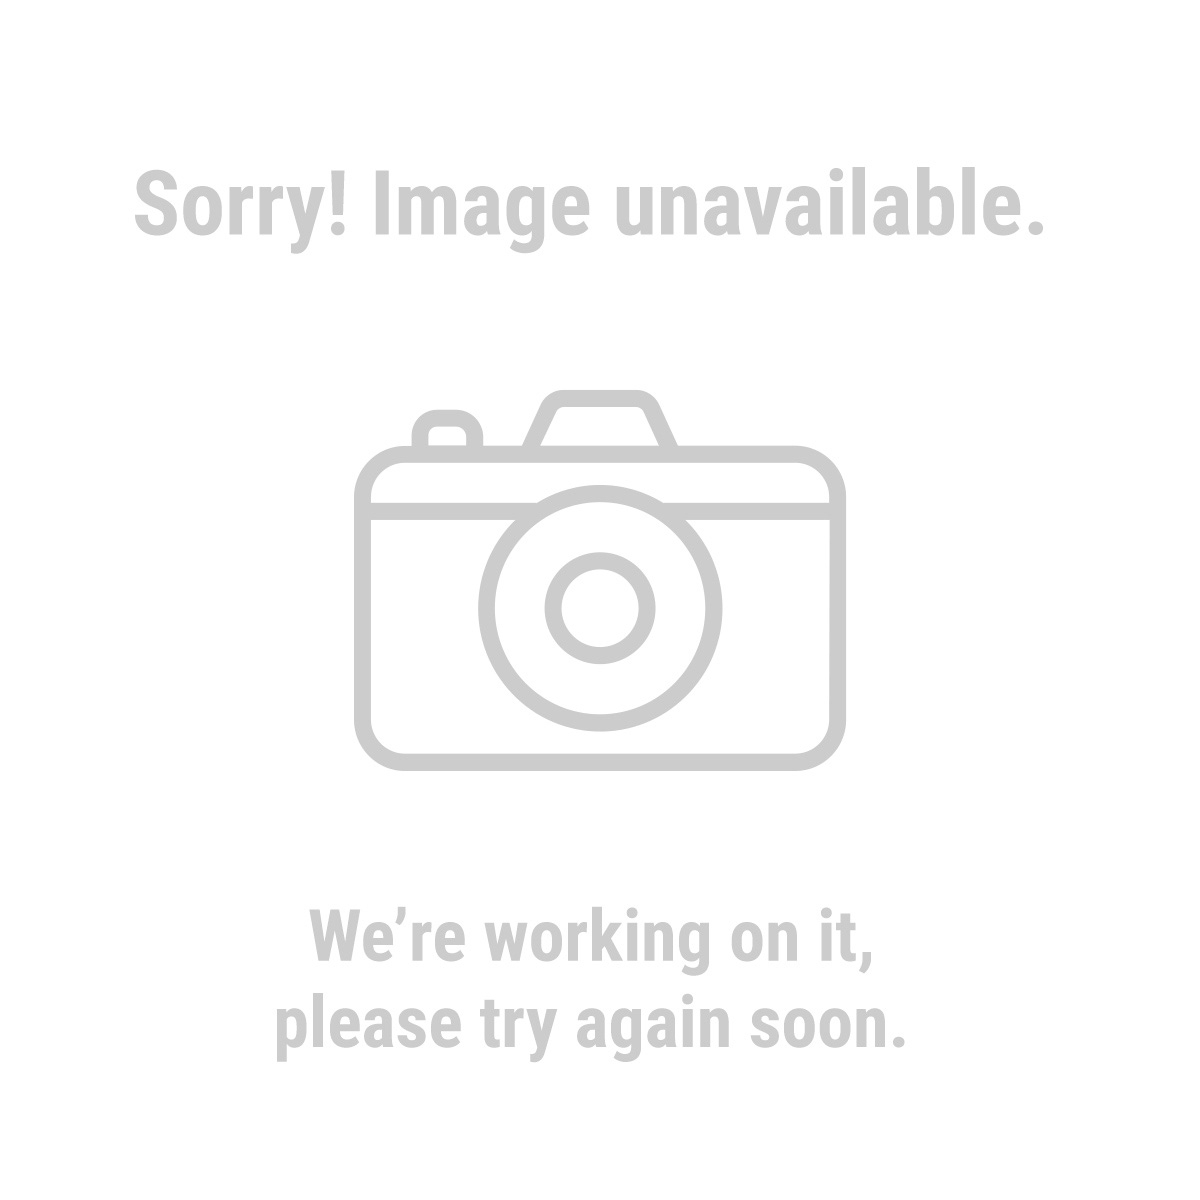 HFT 61859 50 ft. x 14 Gauge Outdoor Extension Cord